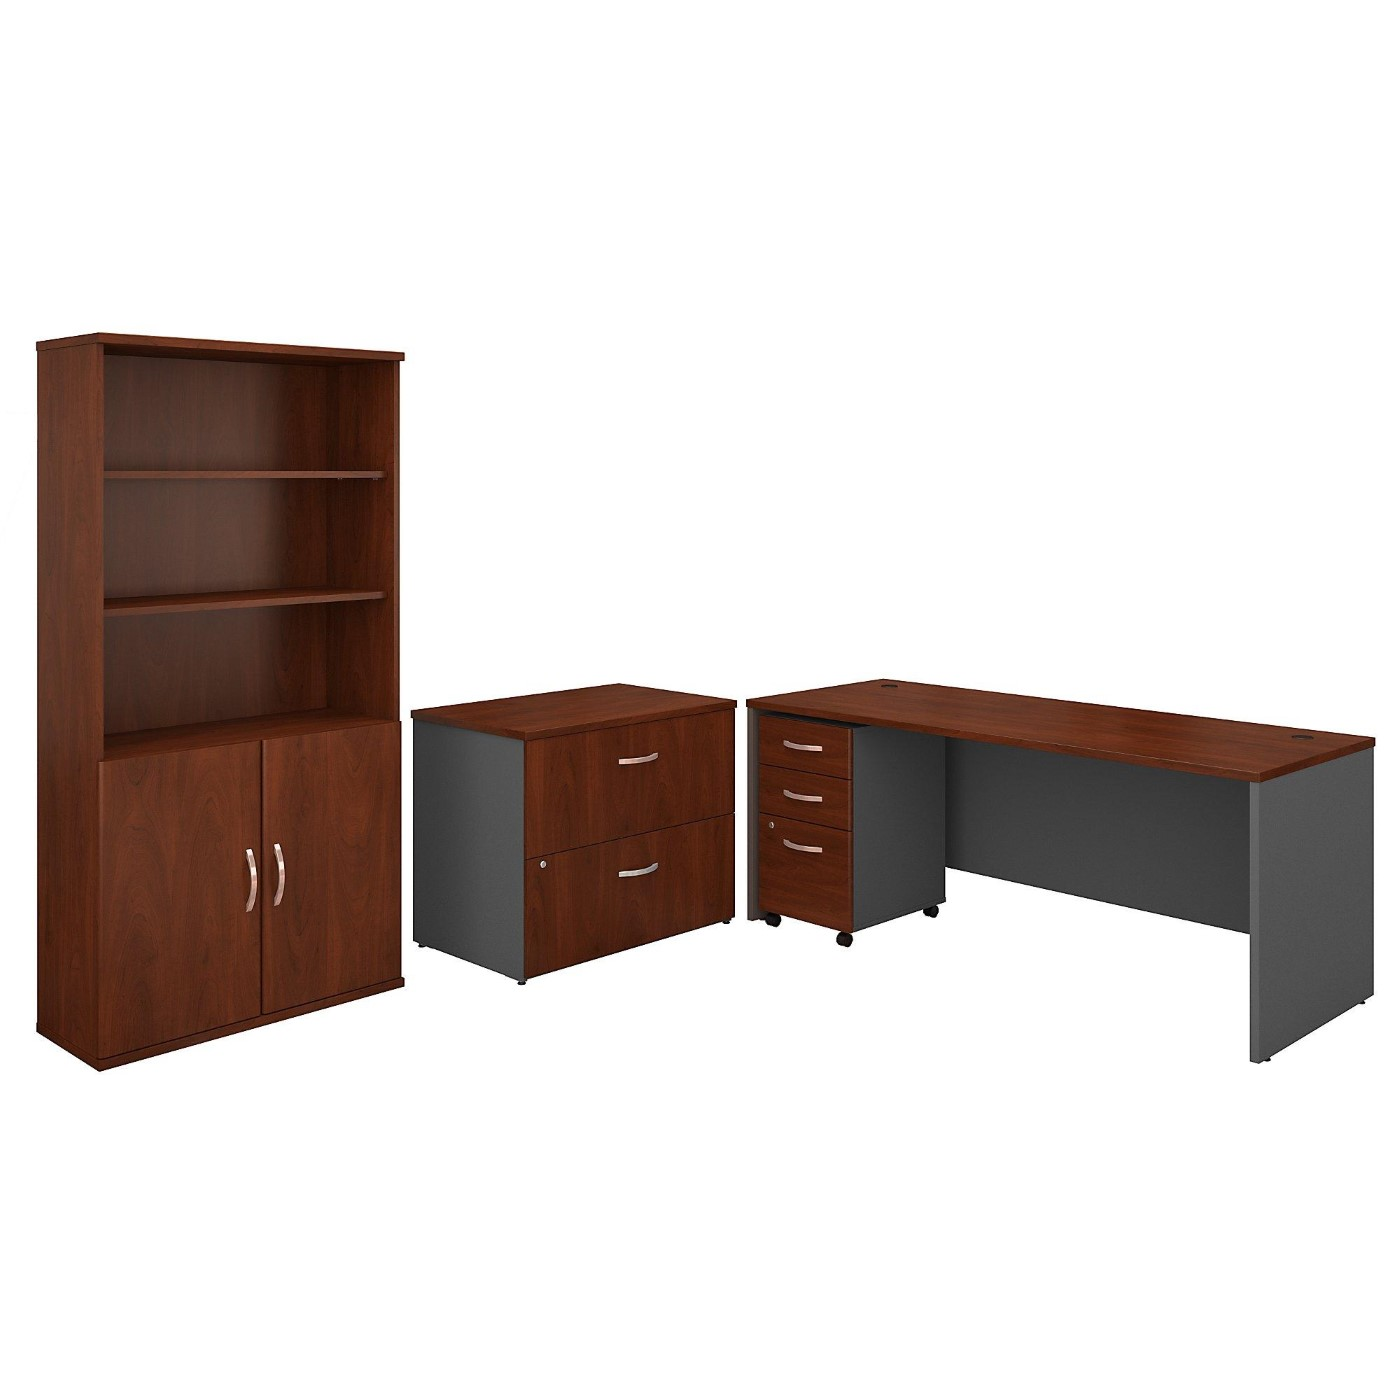 BUSH BUSINESS FURNITURE SERIES C 72W OFFICE DESK WITH BOOKCASE AND FILE CABINETS. FREE SHIPPING  VIDEO BELOW.  SALE DEDUCT 10% MORE ENTER '10percent' IN COUPON CODE BOX WHILE CHECKING OUT.